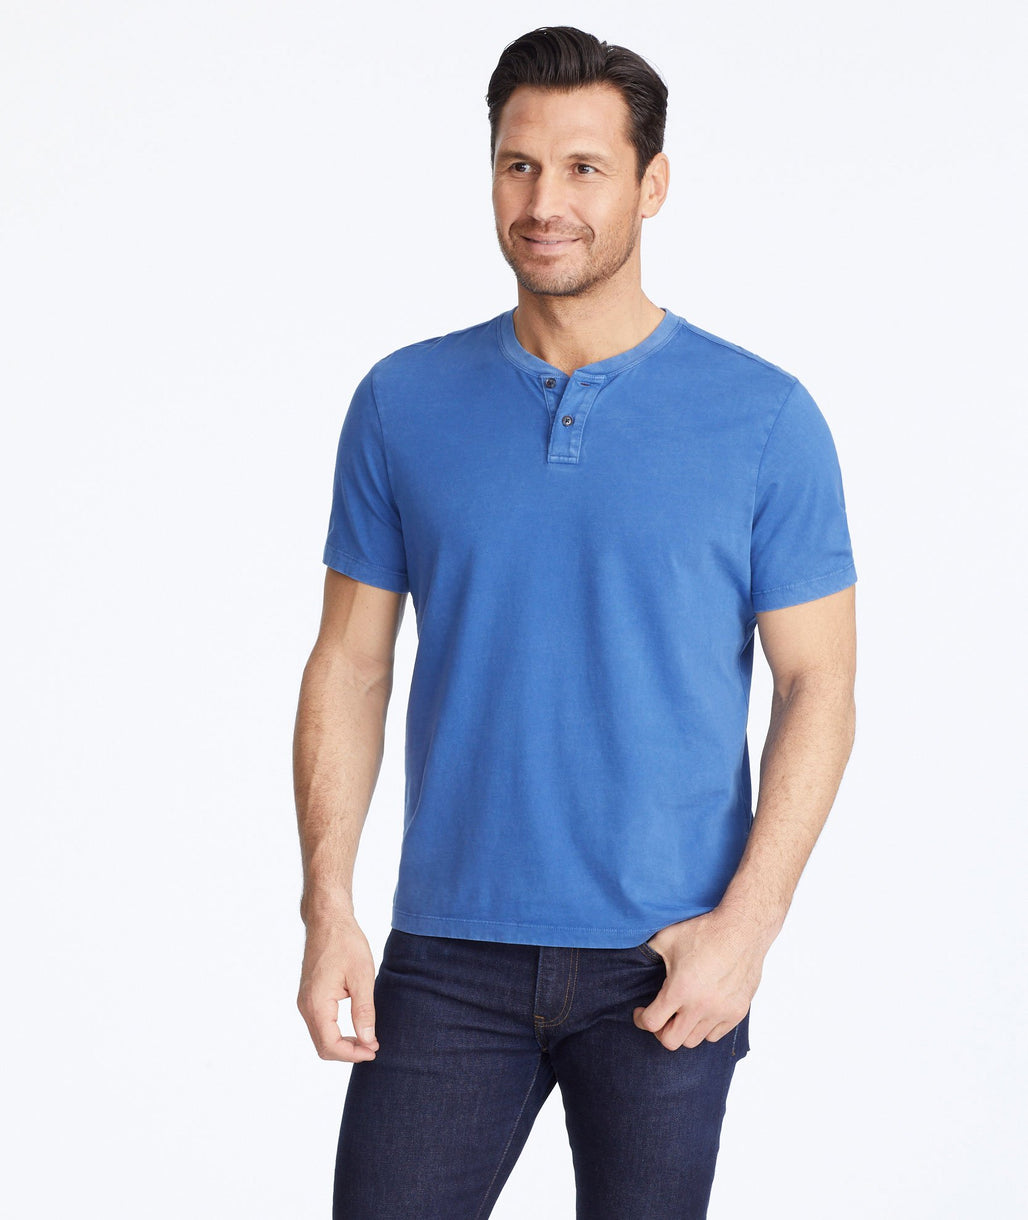 Model wearing a Blue Short-Sleeve Baxter Henley